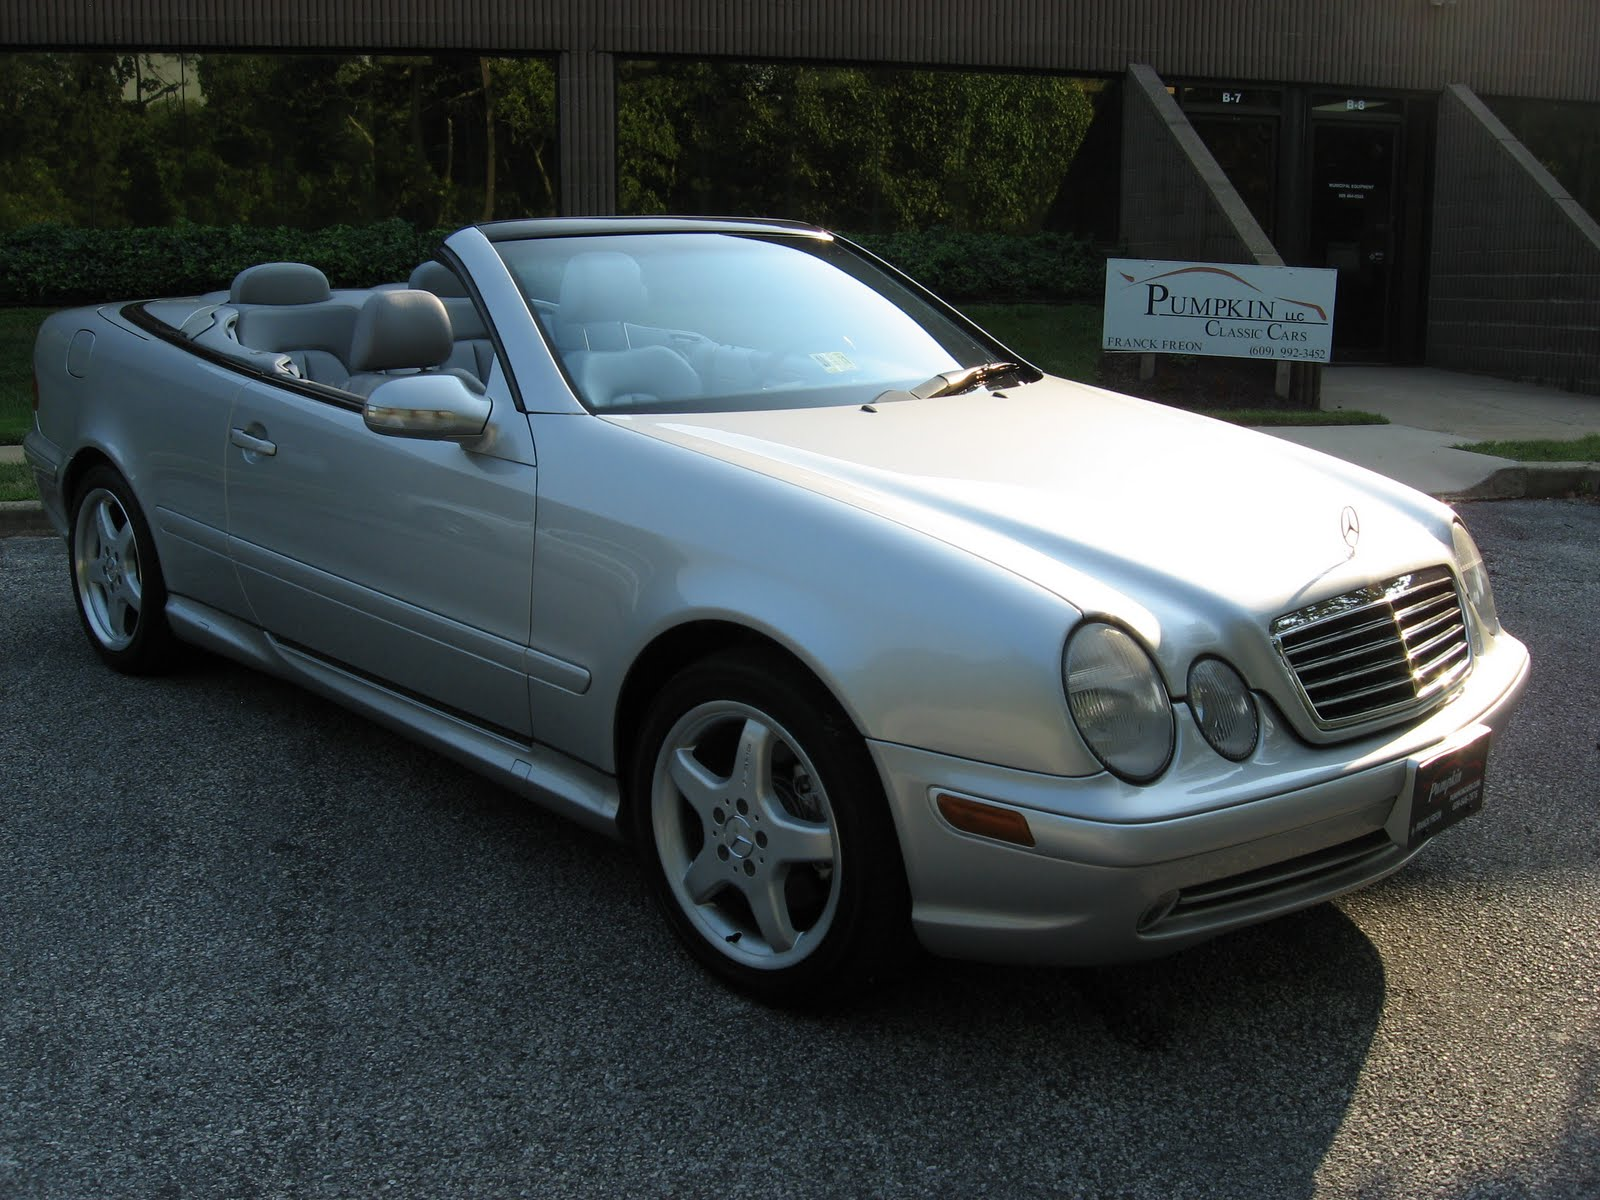 Pumpkin fine cars and exotics 2002 mercedes benz clk430 for Mercedes benz clk 2002